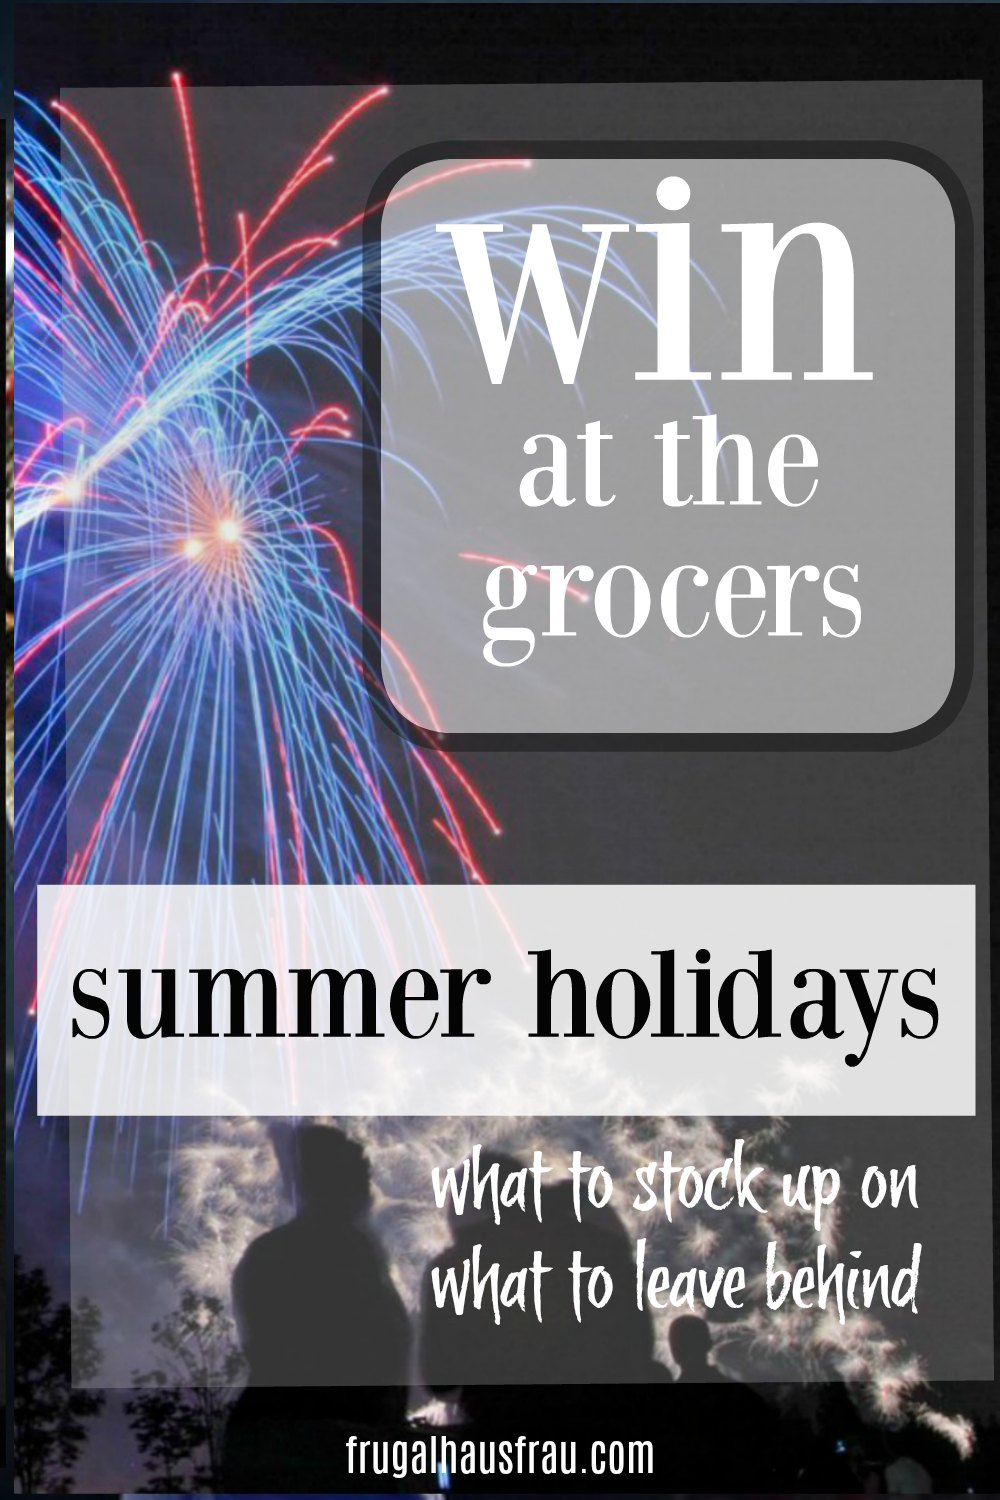 Summer Holiday Grocery Savings - Learn what to stock up on during Memorial Day, Father's Day, 4th of July & Labor Day. Win at the Grocers! #HolidayGrocerySales #SaveMoneyOnGroceries #HowToBuySmart #SaveMoneyOnGroceriesSummerHolidays #SaveMoneyGrocers